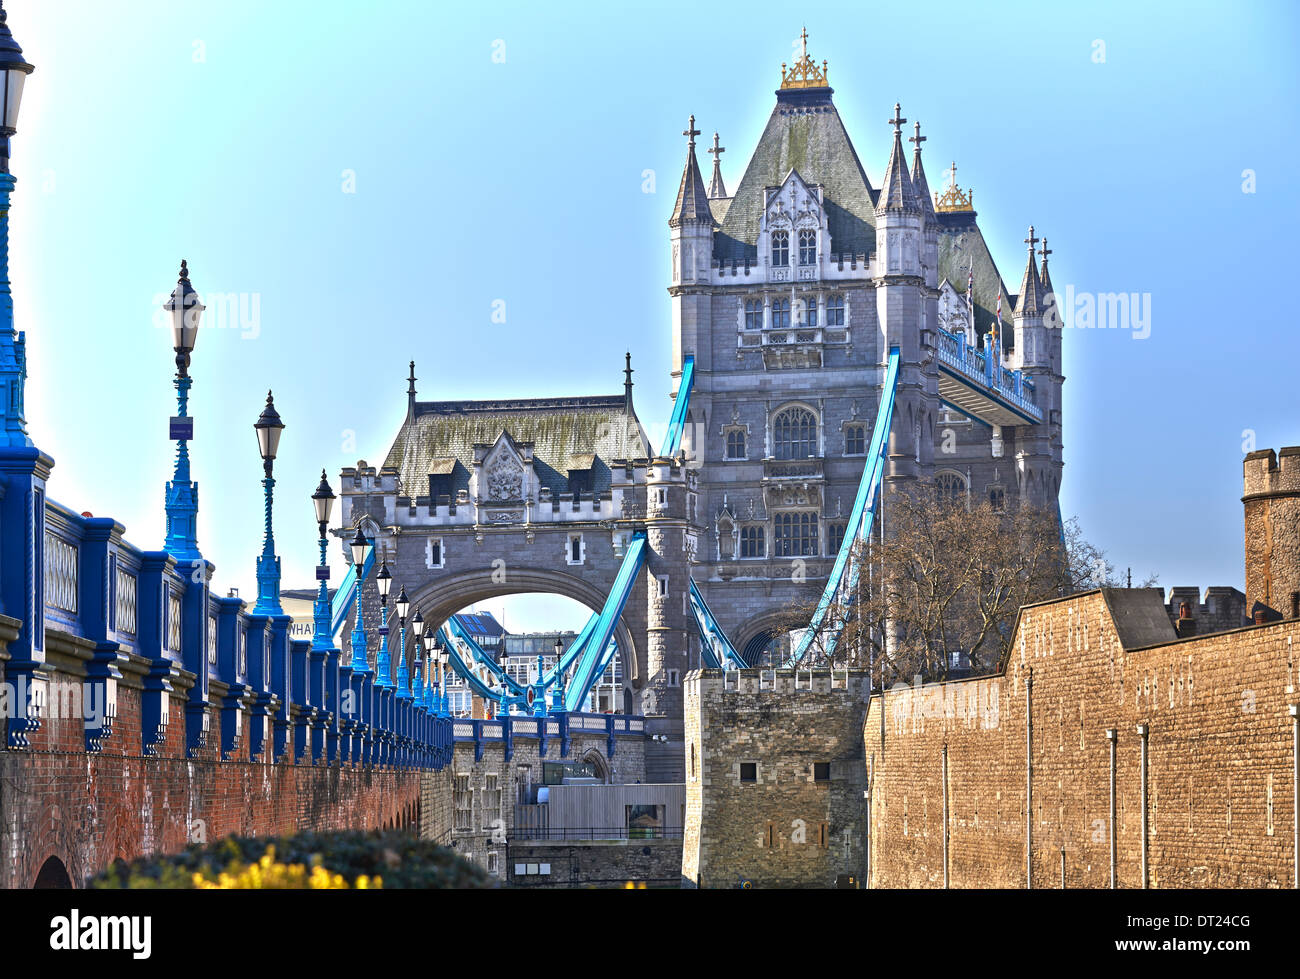 Tower Bridge (built 1886–1894) is a combined bascule and suspension bridge in London, over the River Thames - Stock Image